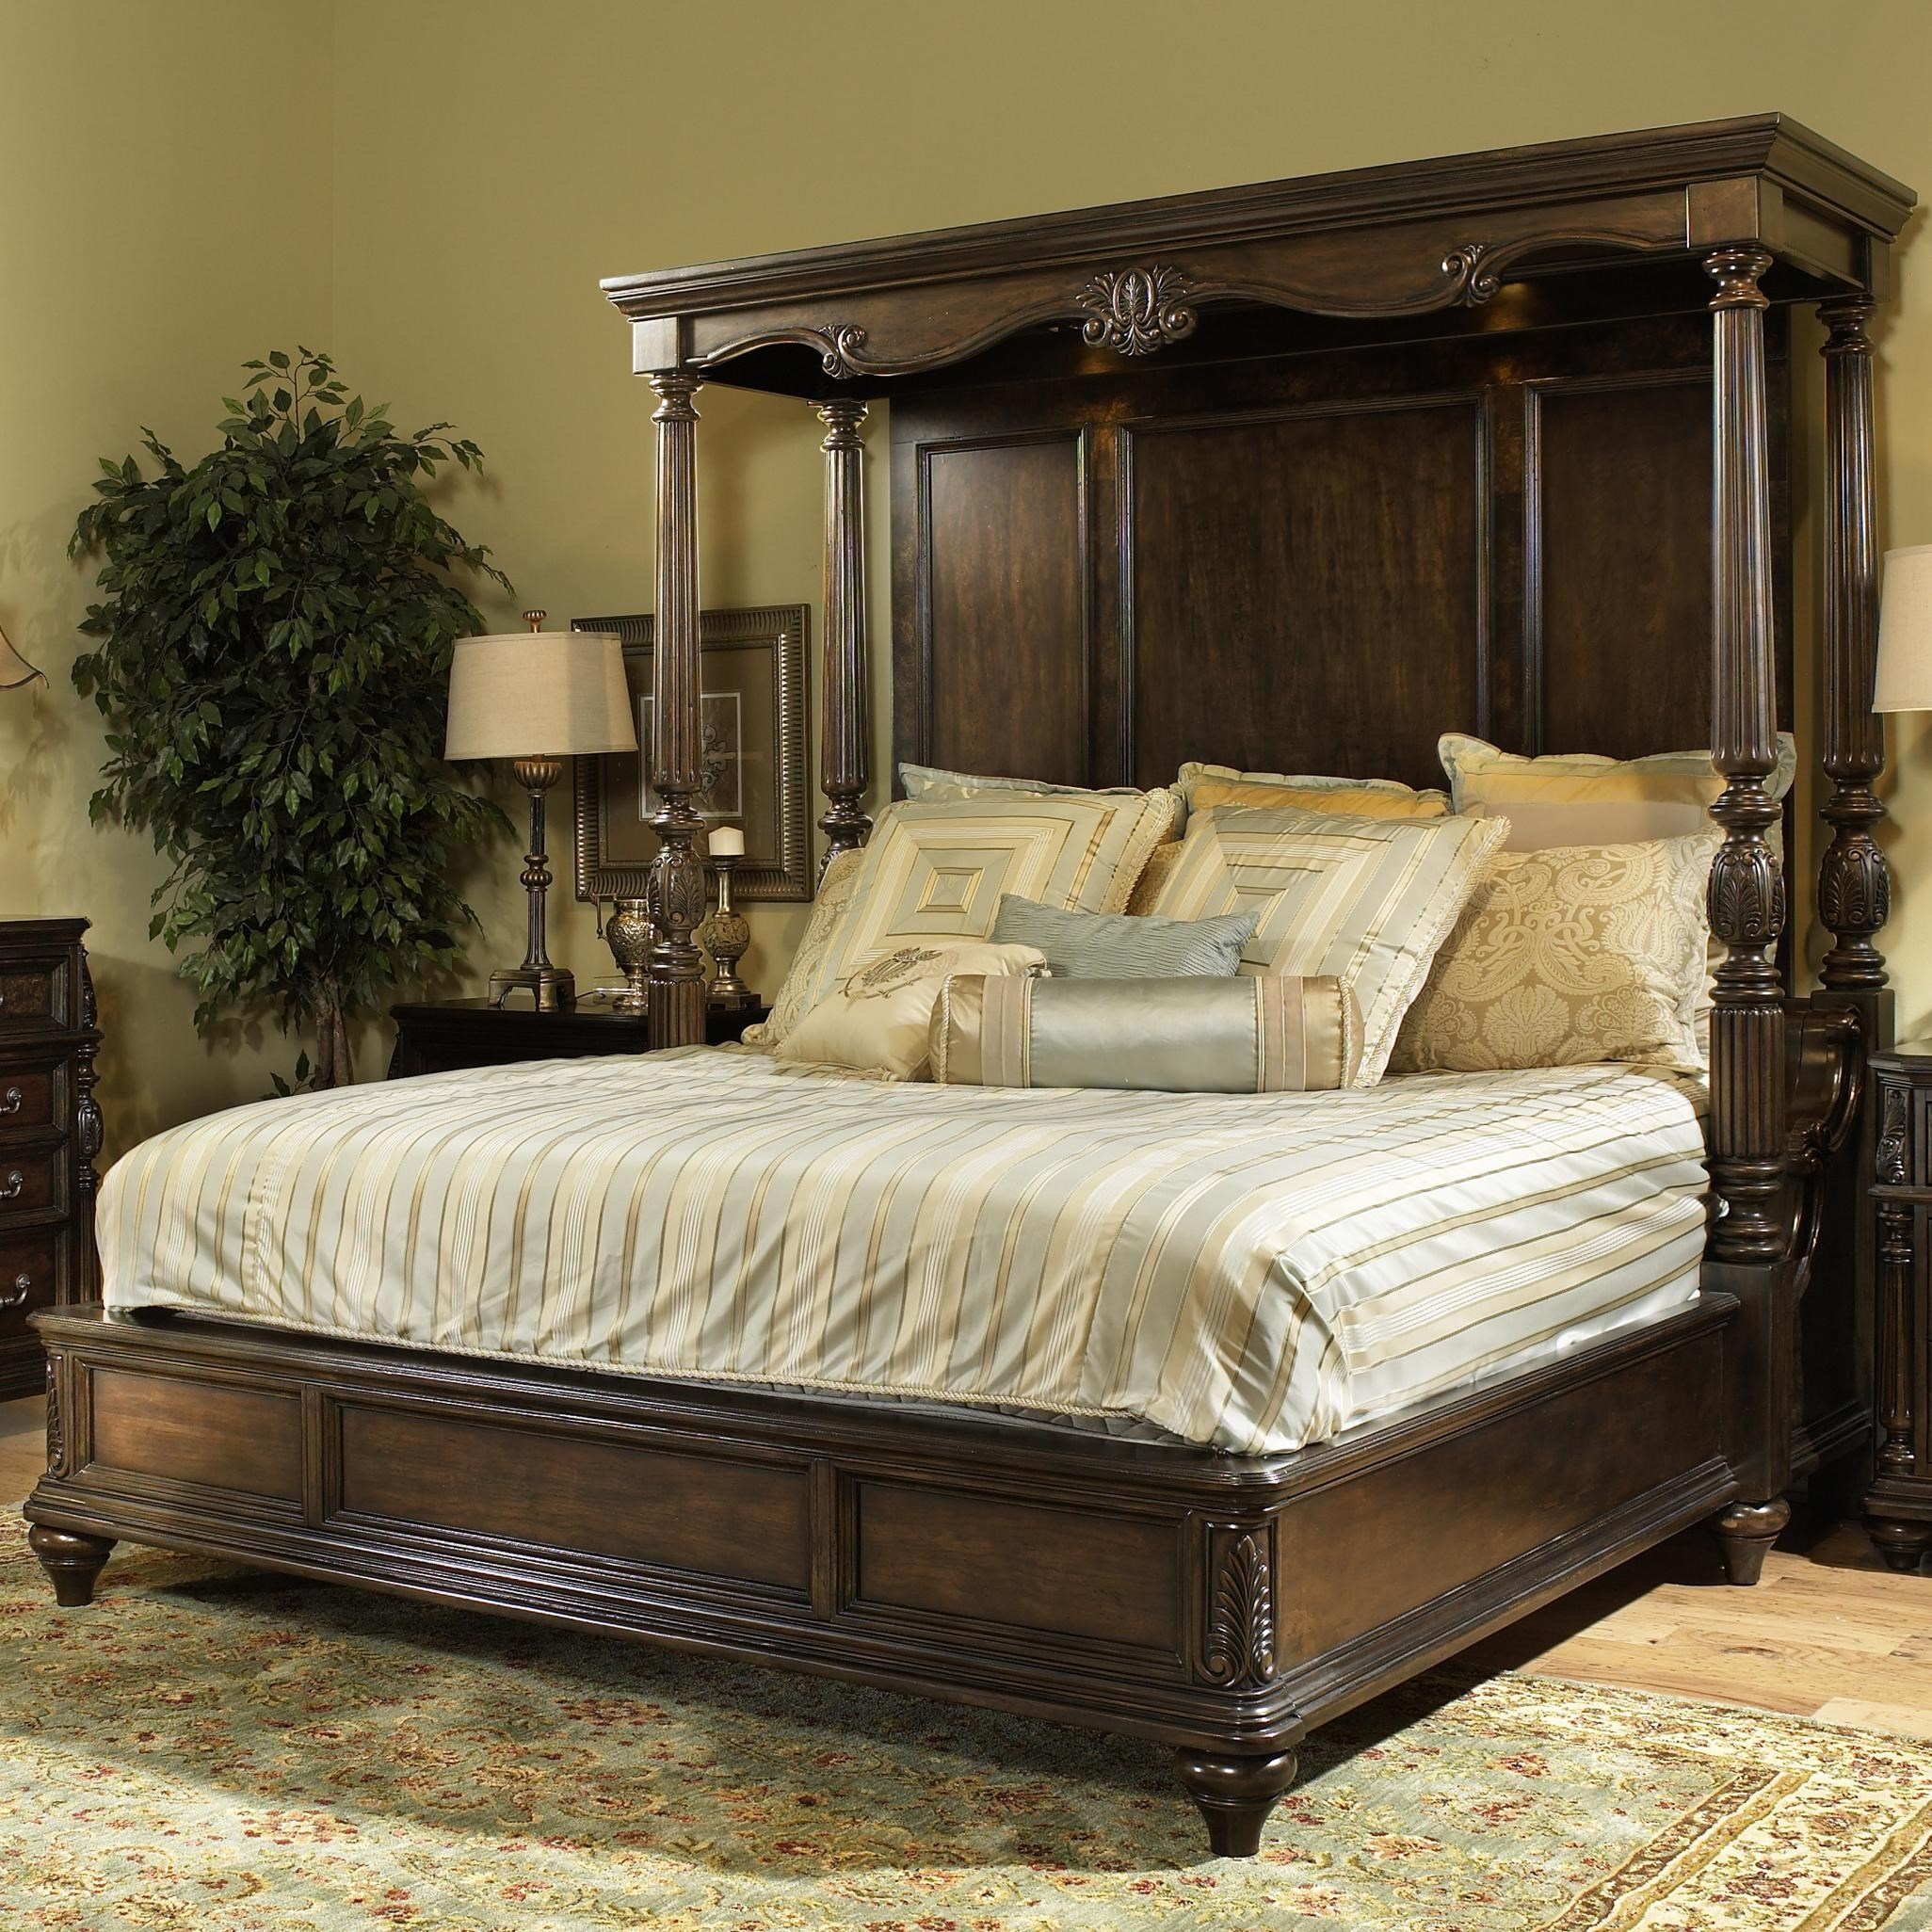 Ivan Smith Furniture Ivans Outlet Shreveport Furniture